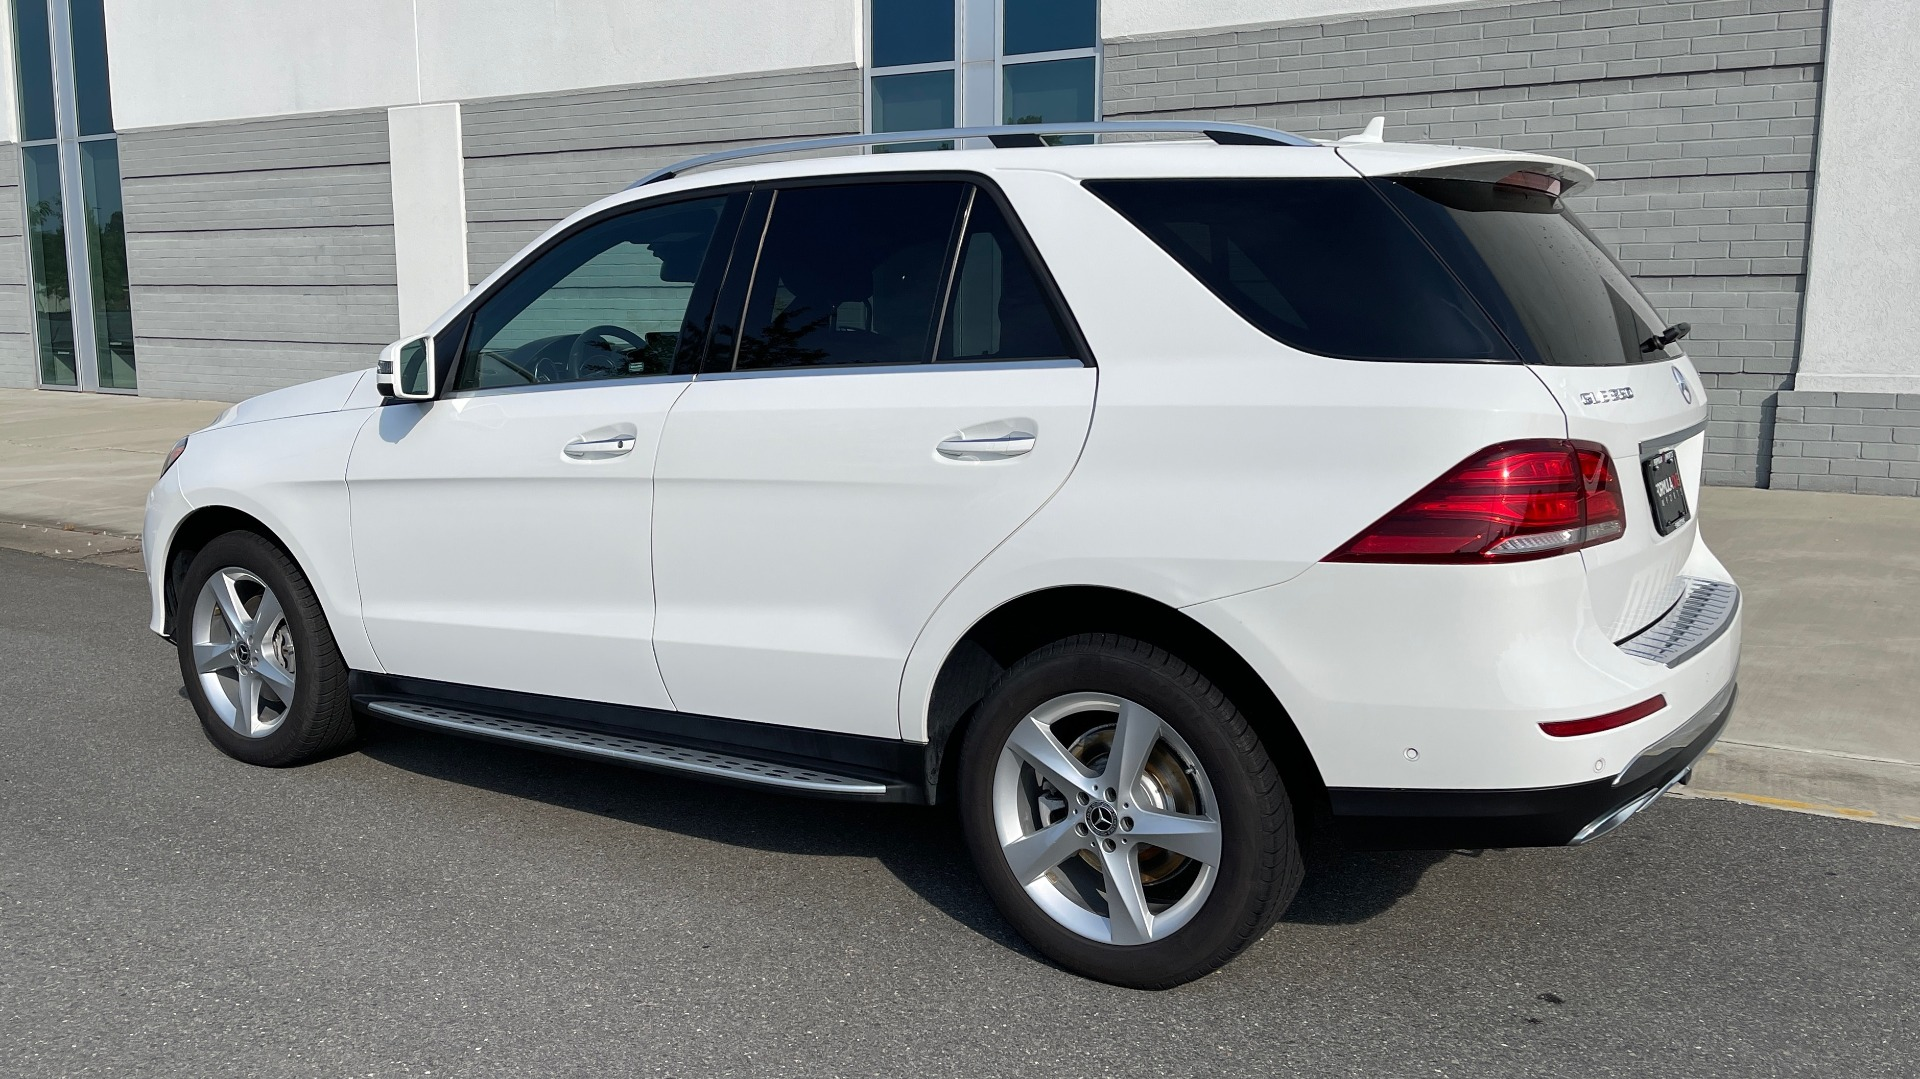 Used 2018 Mercedes-Benz GLE 350 4MATIC PREMIUM / NAV / SUNROOF / HTD STS / TRAILER HITCH / REARVIEW for sale $36,295 at Formula Imports in Charlotte NC 28227 5